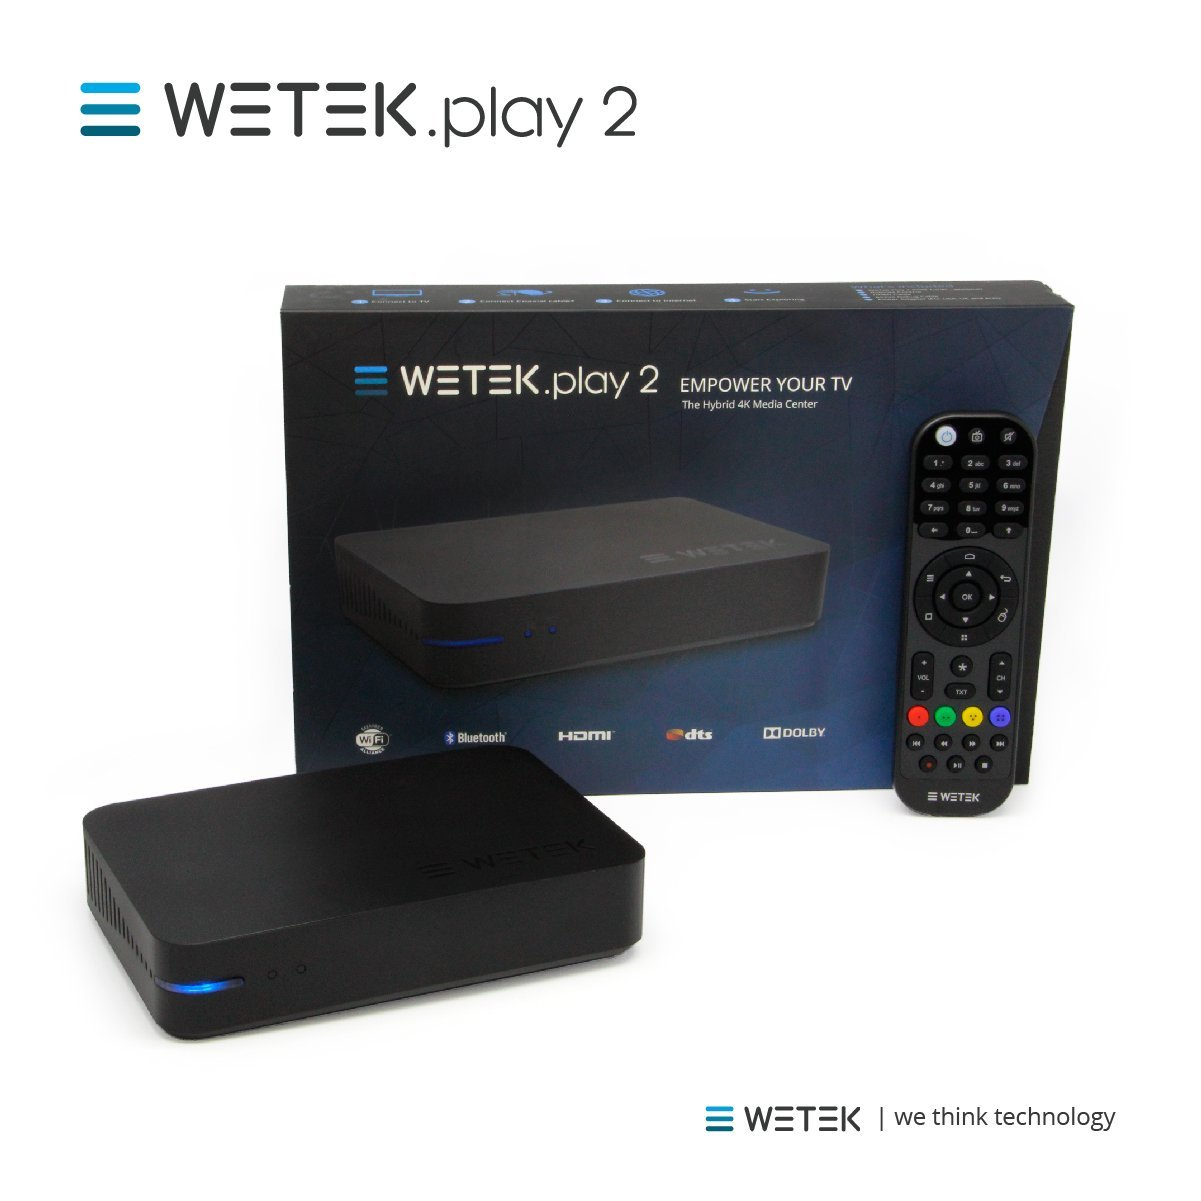 Android Boxes With Built In Tuners That Record Live Tv Over The Air Digital Tv